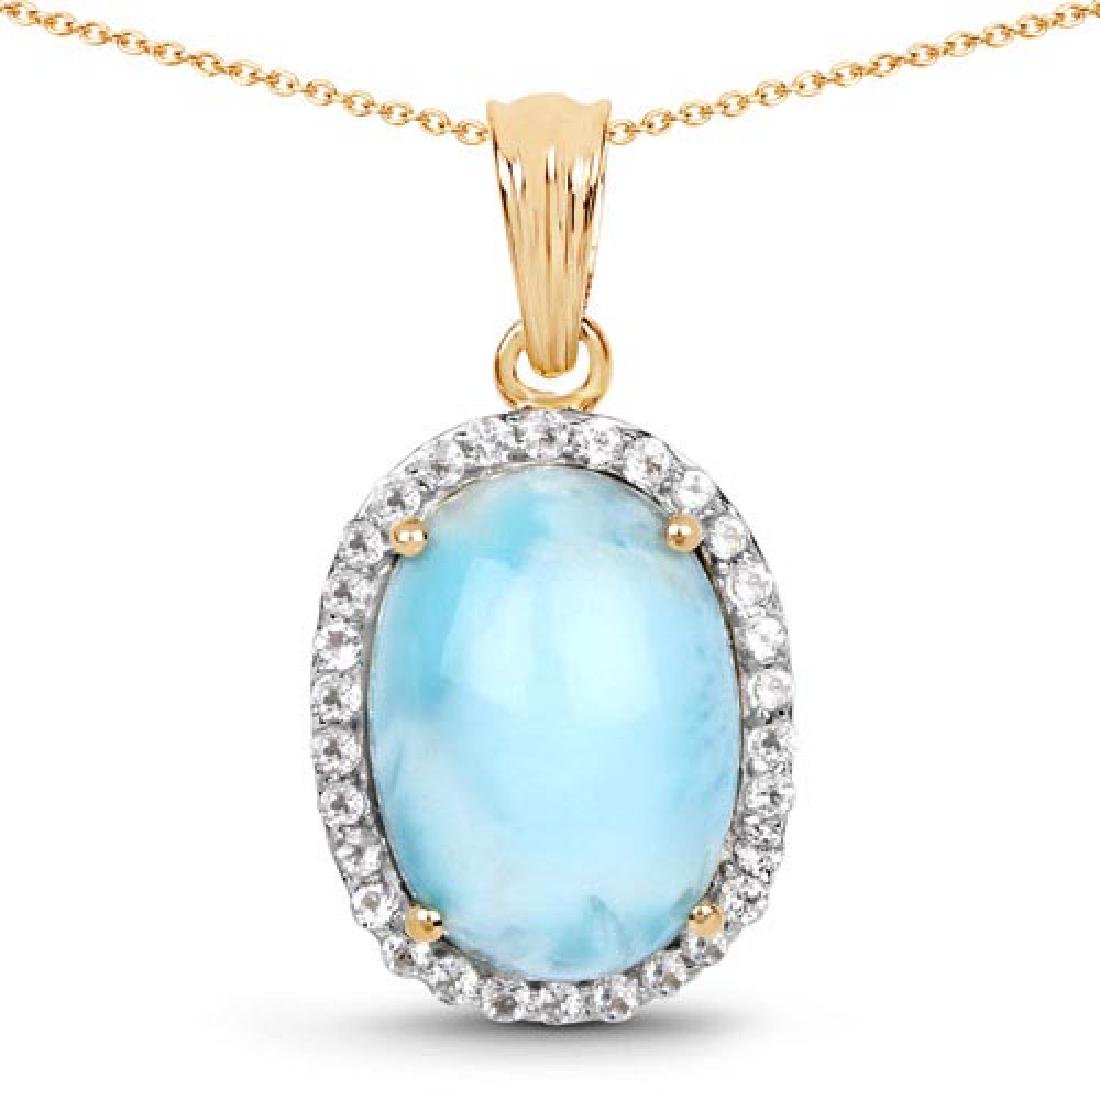 14K Yellow Gold Plated 13.55 Carat Genuine Larimar and